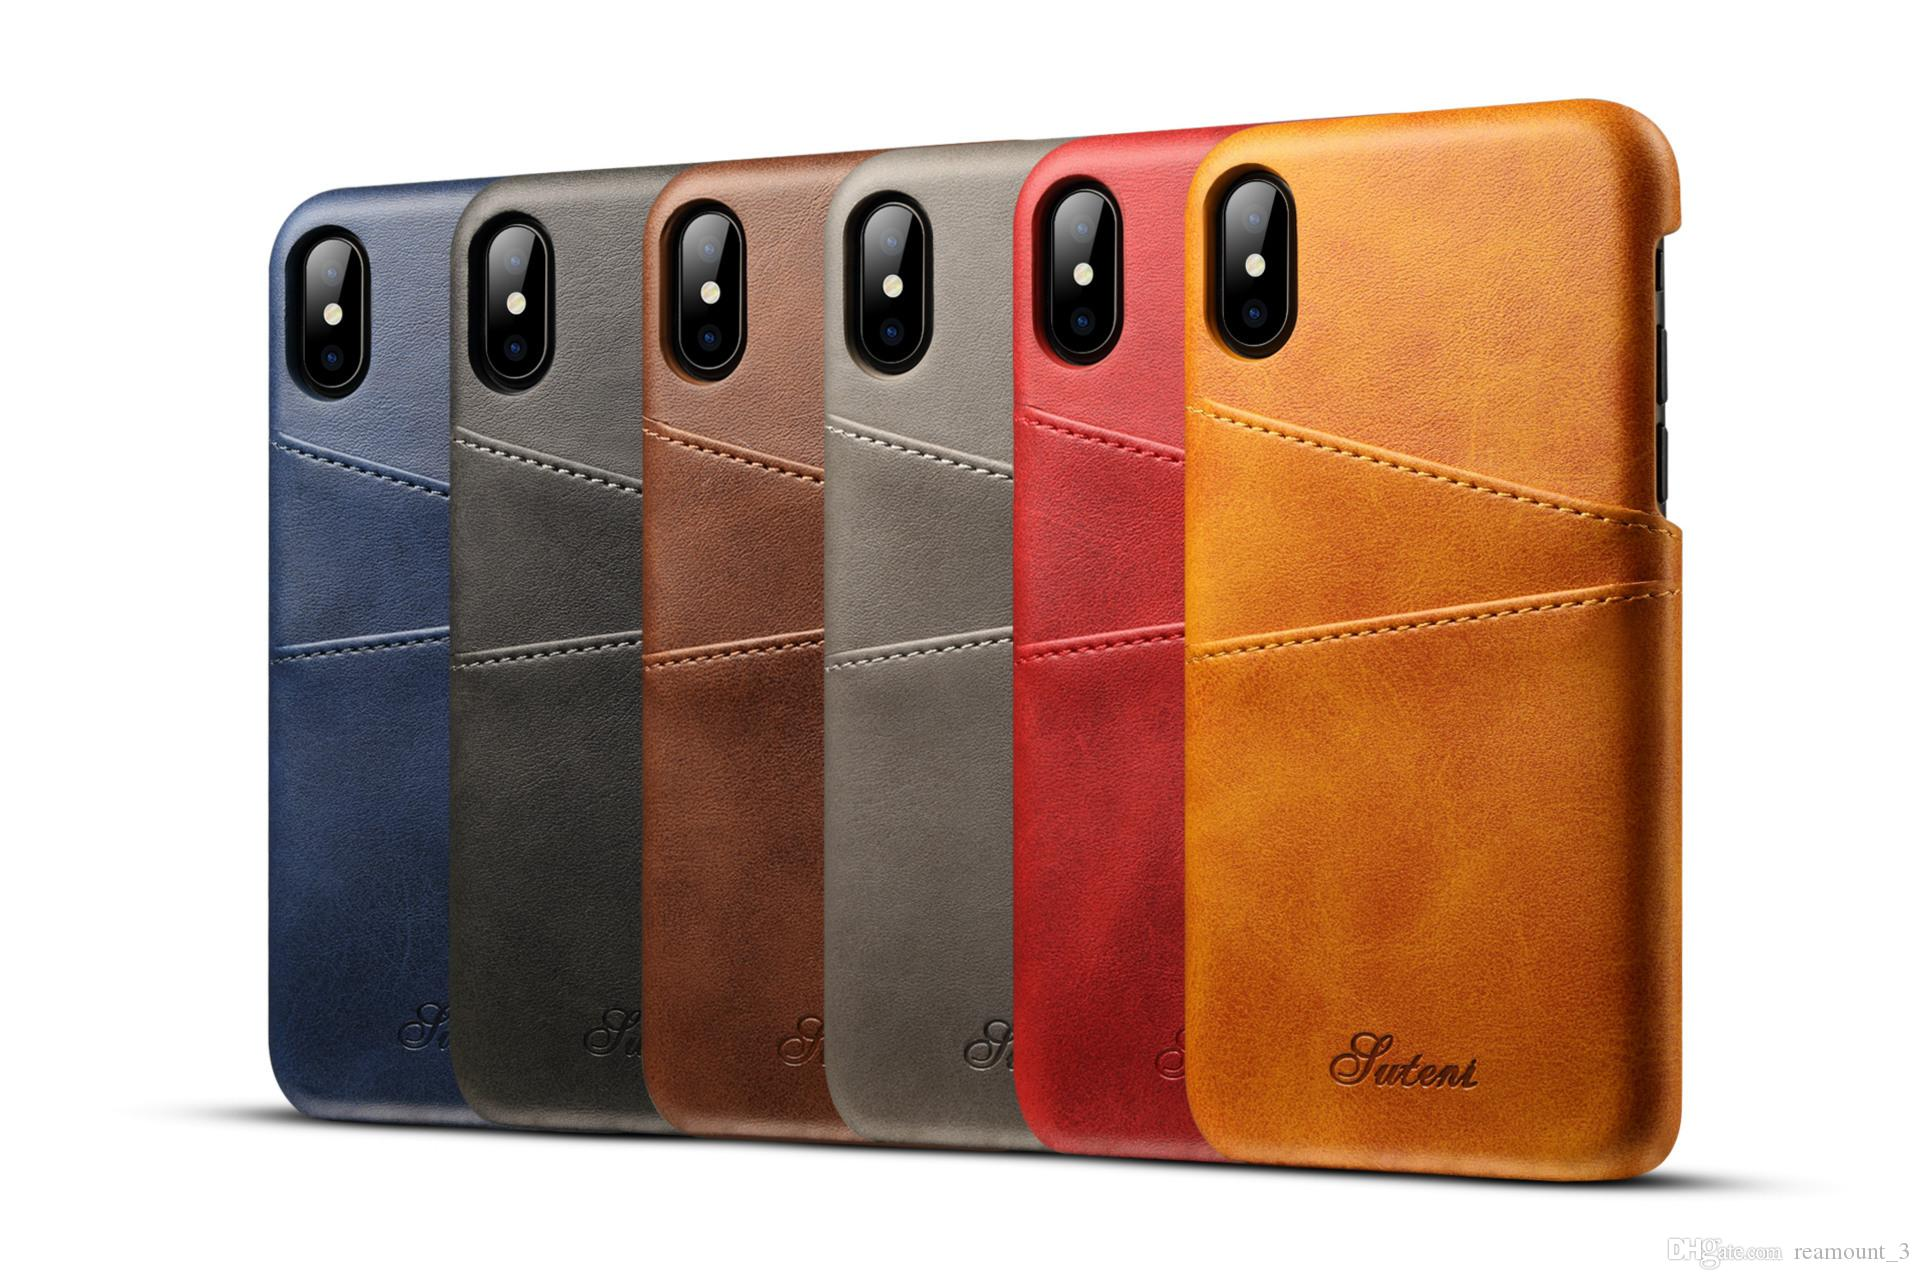 custom logo case for iphone 8 8 plus 7 7 plus cover leather luxurycustom logo case for iphone 8 8 plus 7 7 plus cover leather luxury wallet card slots back capa for iphone 7 8plus cases fundas custom cell phone cases